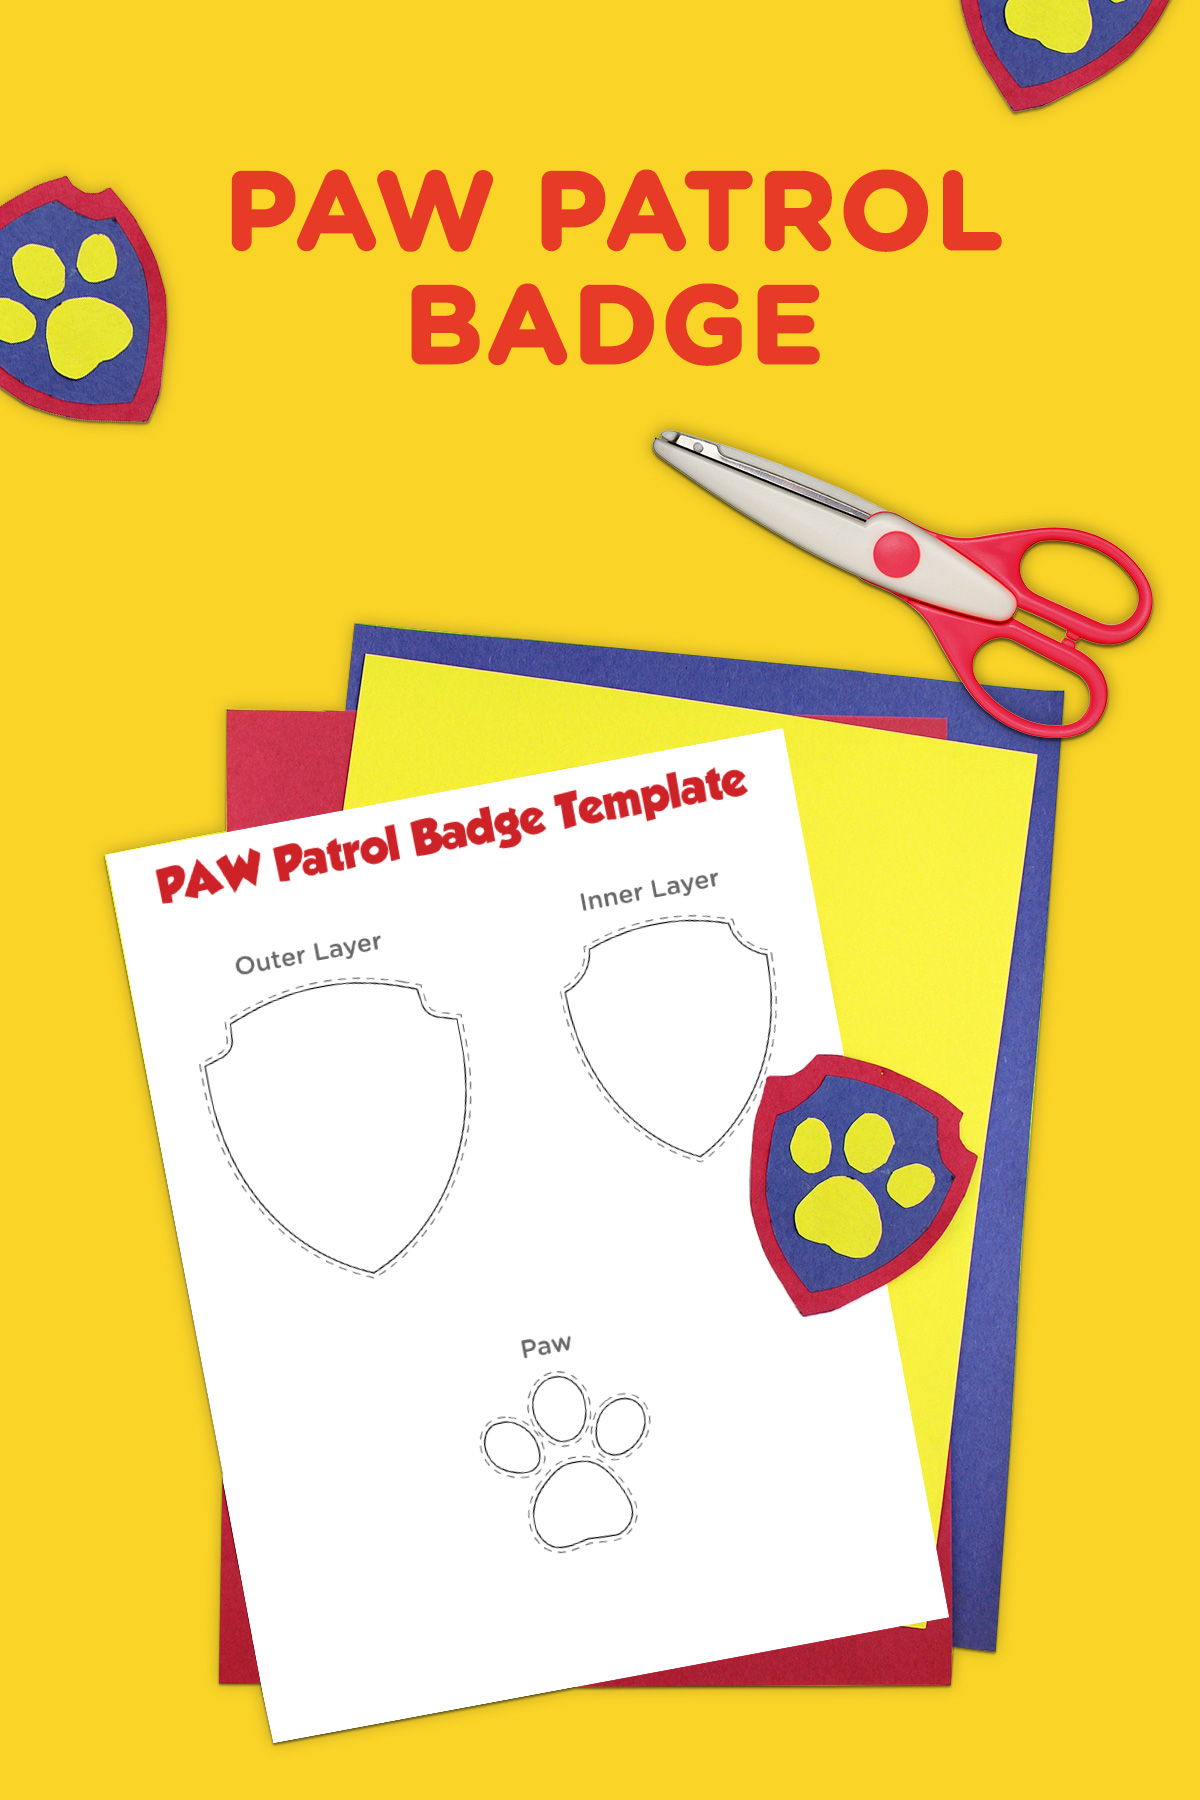 graphic regarding Paw Patrol Printable Pictures identify PAW Patrol Printable Badge Template Nickelodeon Moms and dads